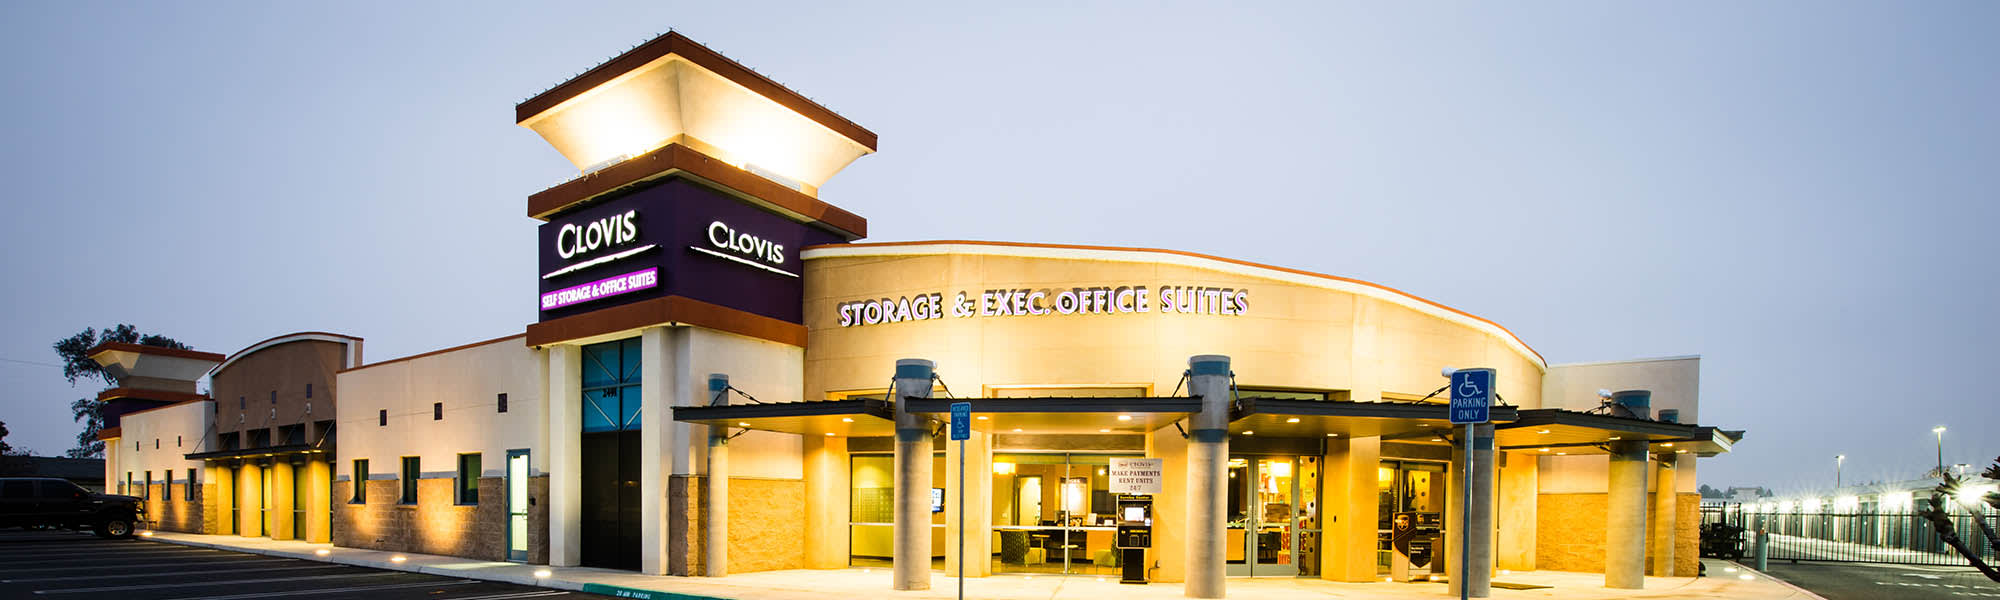 Air Conditioned storage at Clovis Storage & Executive Office Suites in Clovis